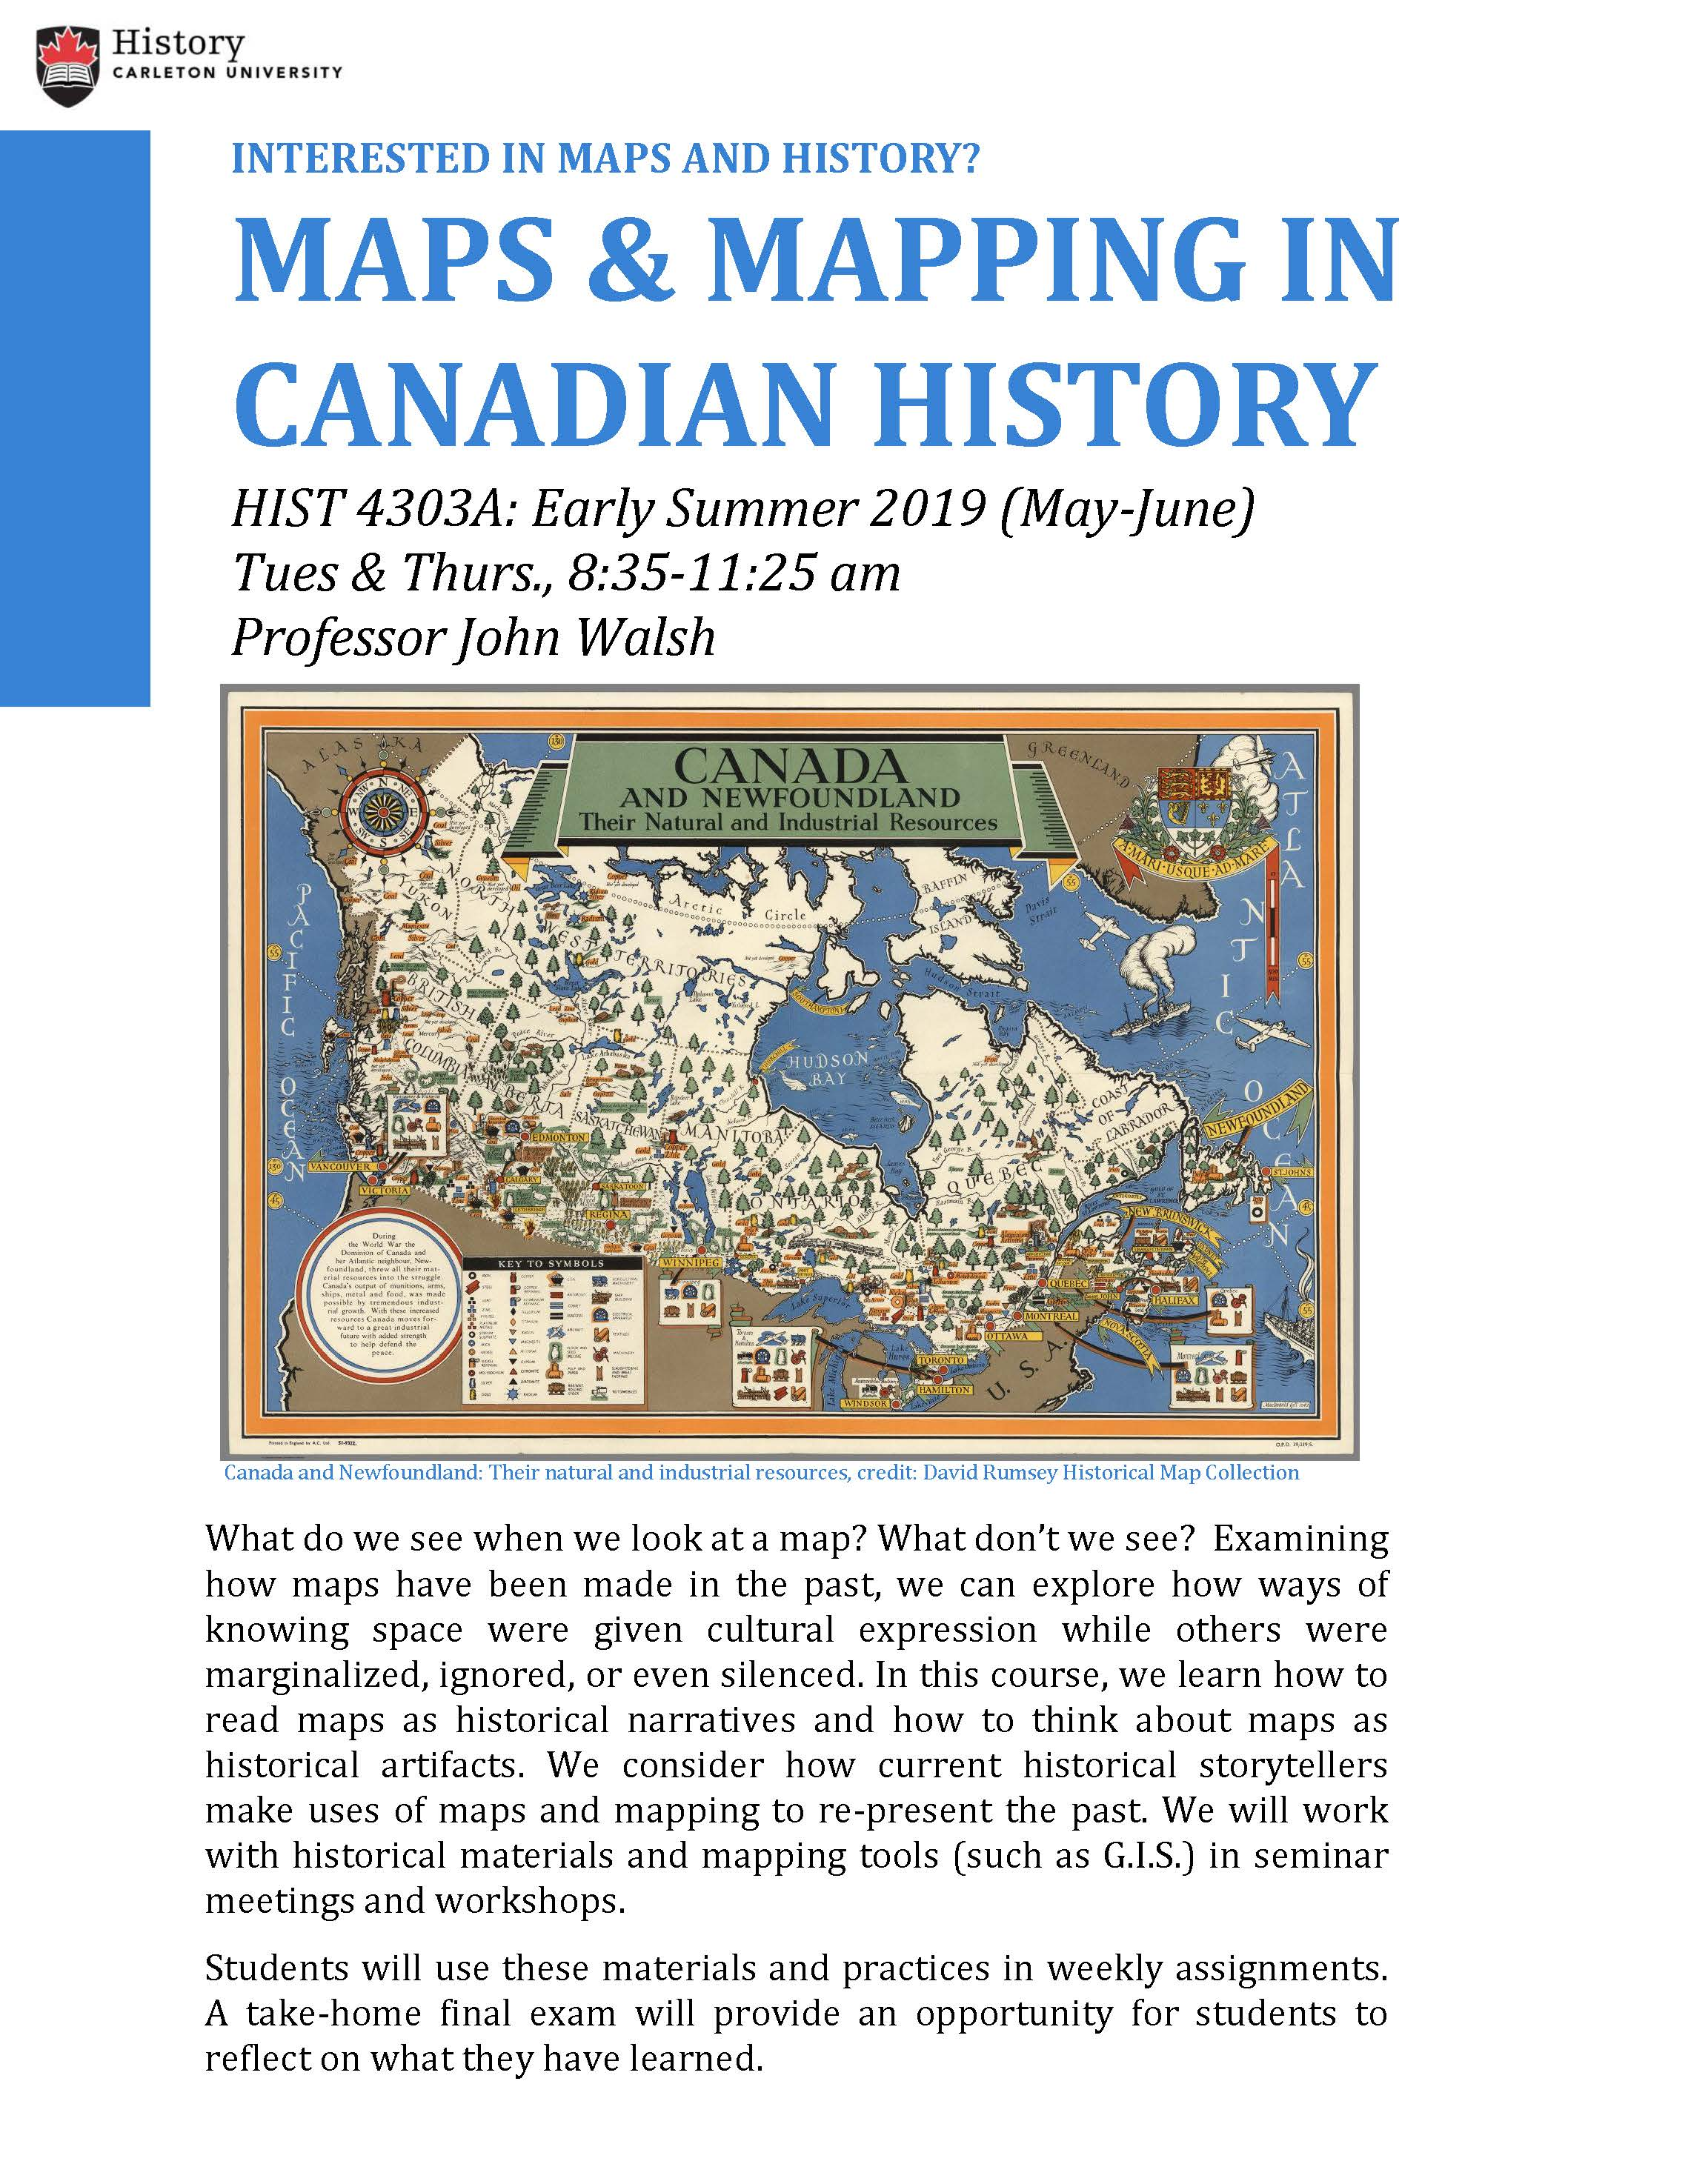 Map Of Canada History.Hist 4303a Maps And Mapping In Canadian History Summer 2019